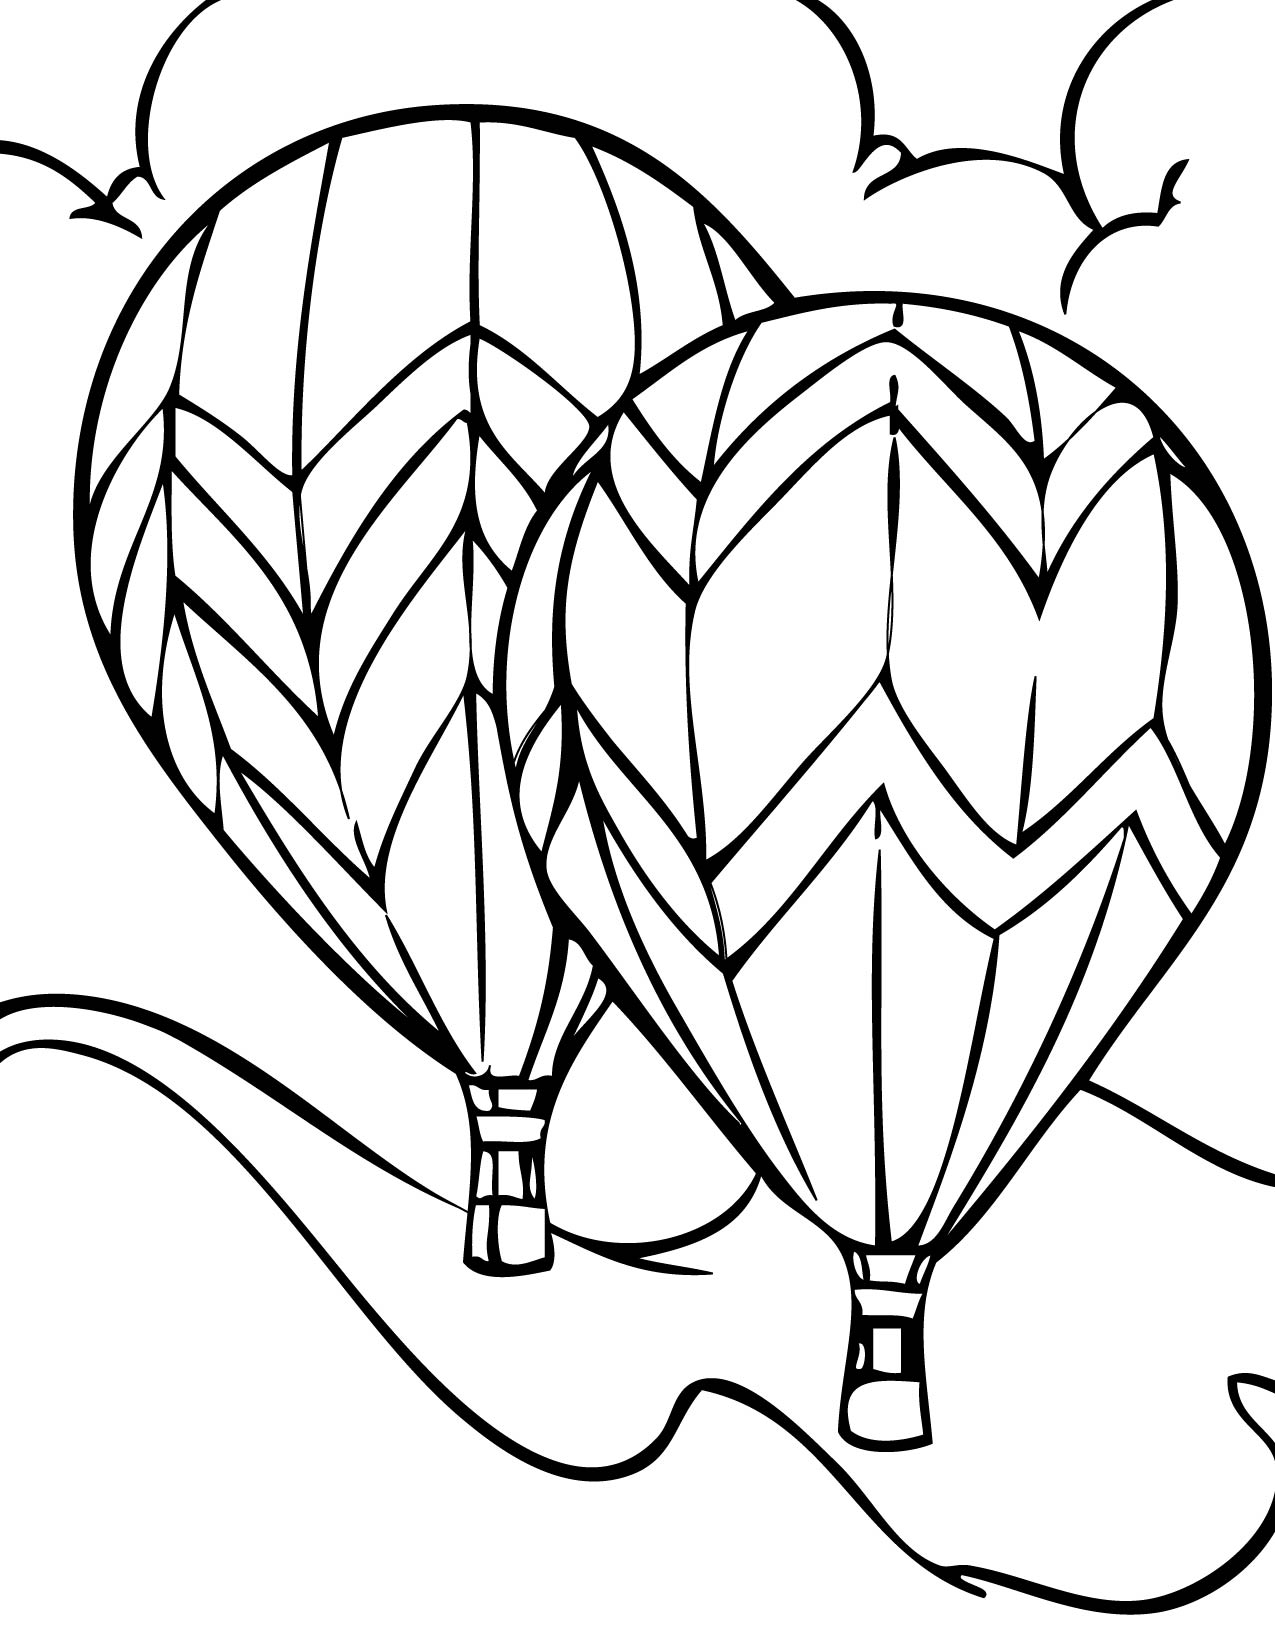 free graphic art coloring pages - photo#16